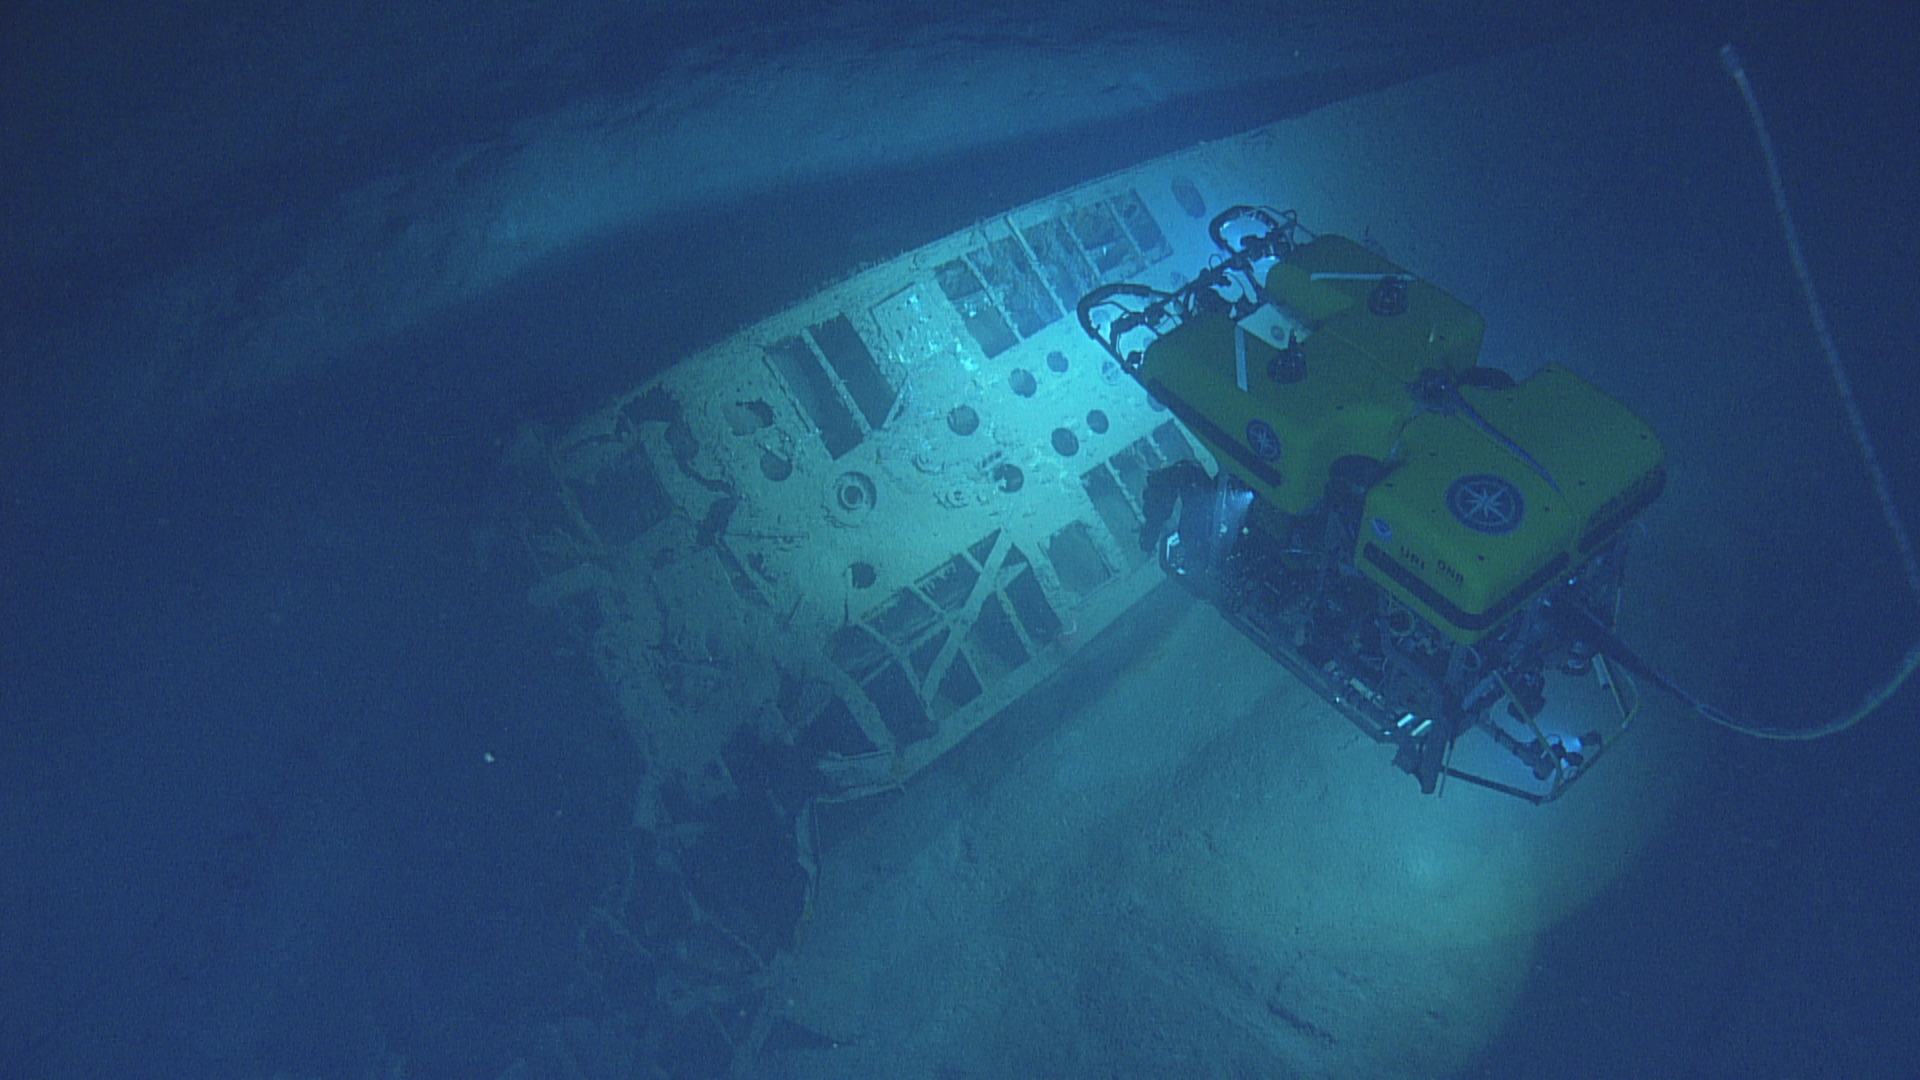 U-166 bow section being filmed by Hercules, view from Argus.